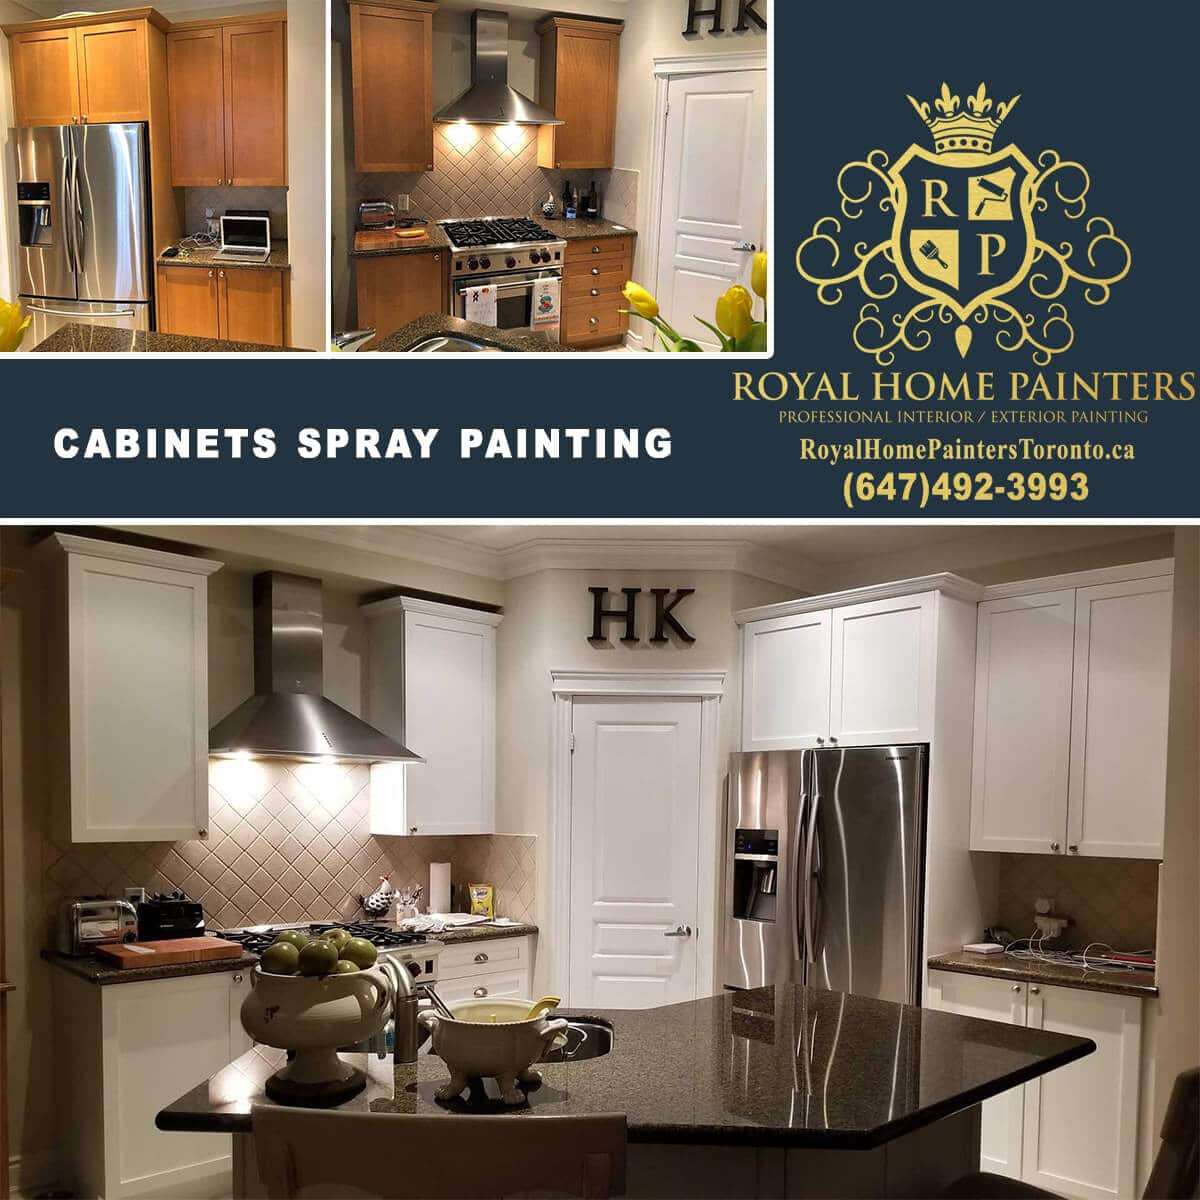 Professional Kitchen Cabinets Spray Painting Toronto